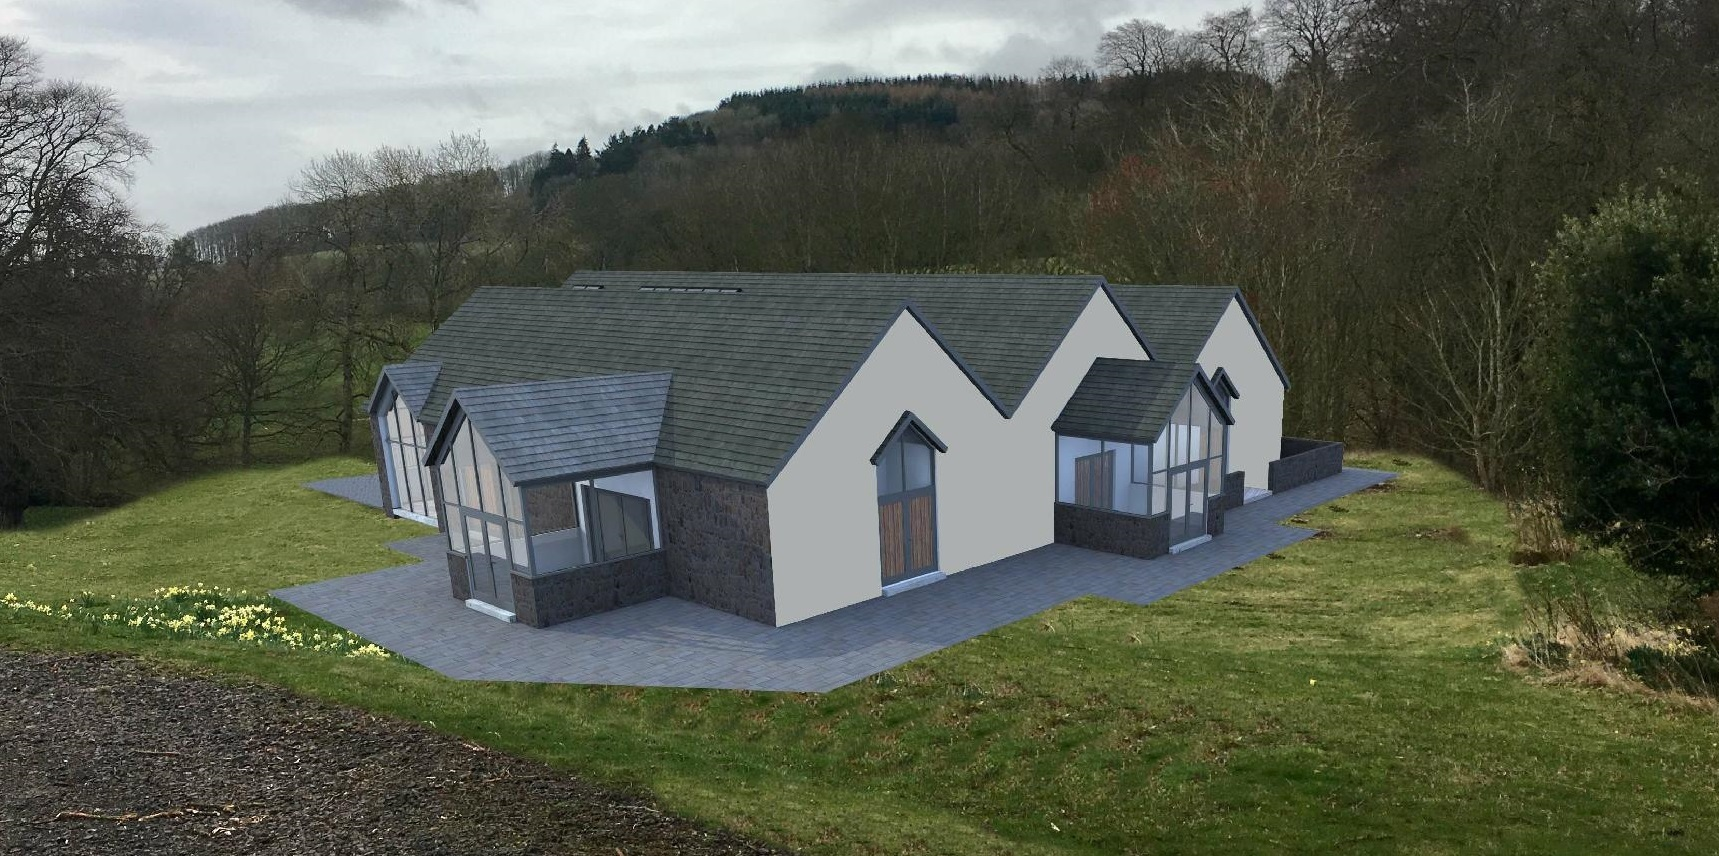 An artist's impression of the proposed new venue at Carphin House.